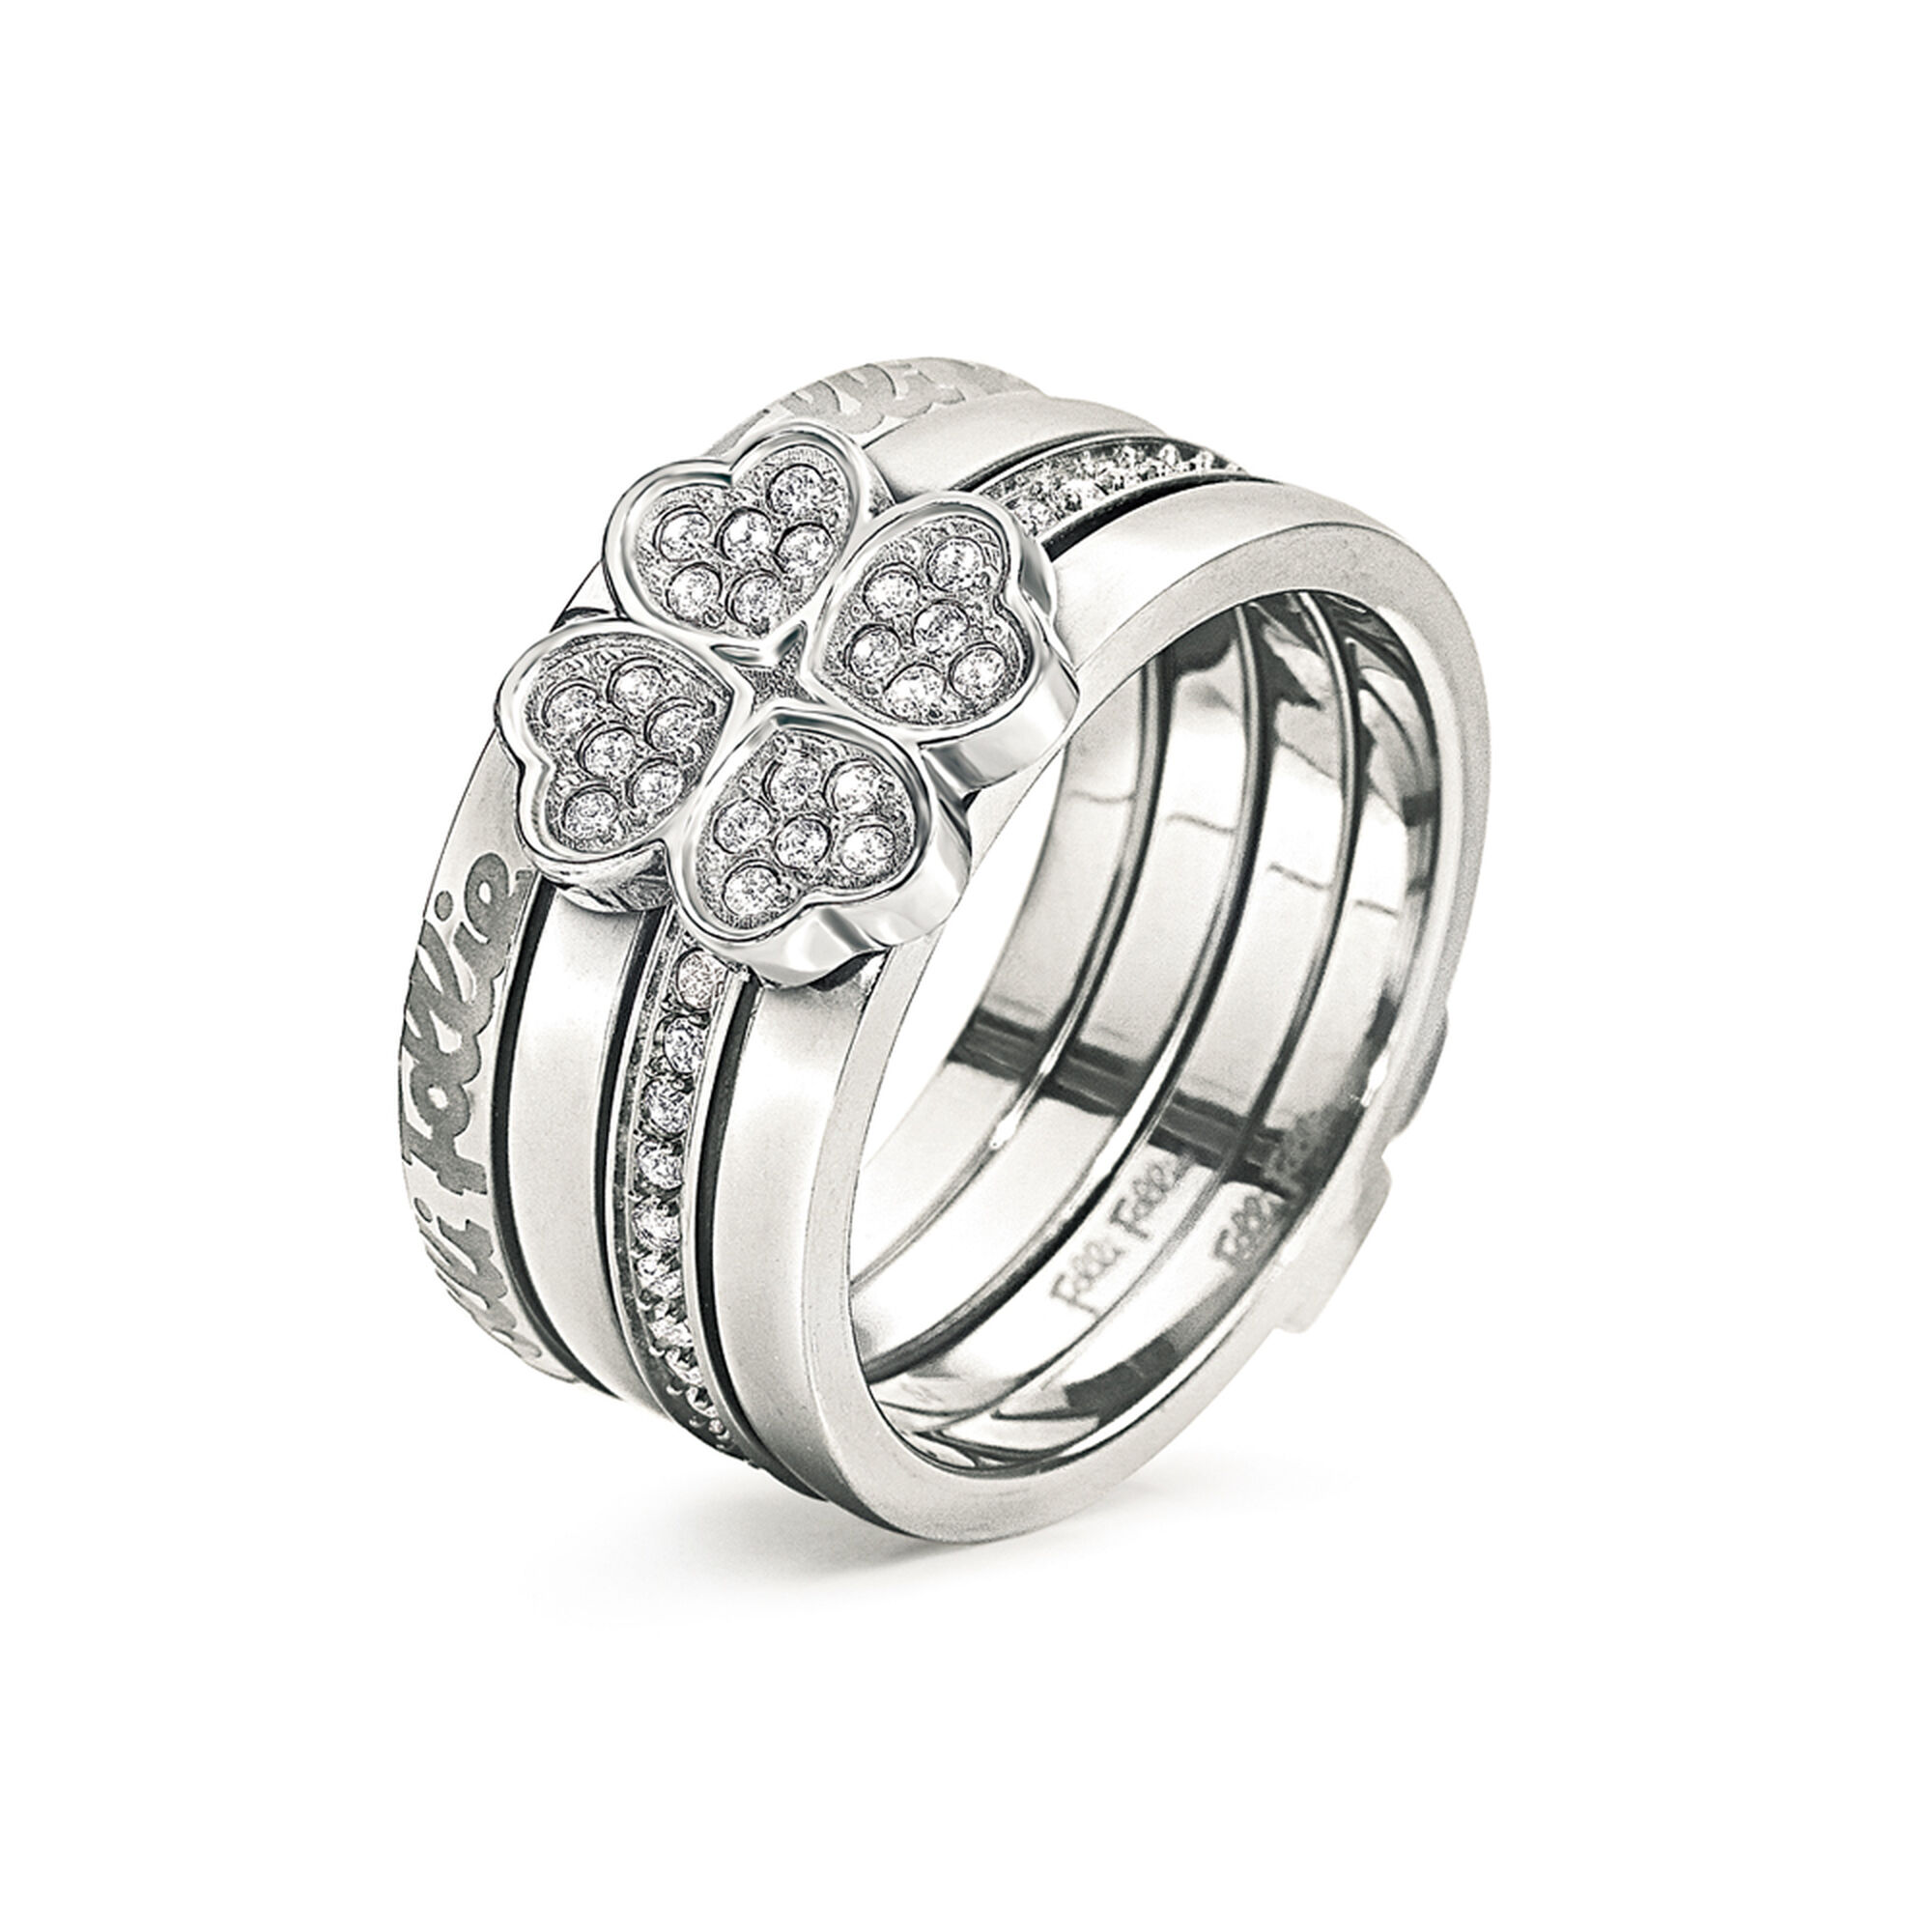 ETERNAL HEART RING Silver Plated